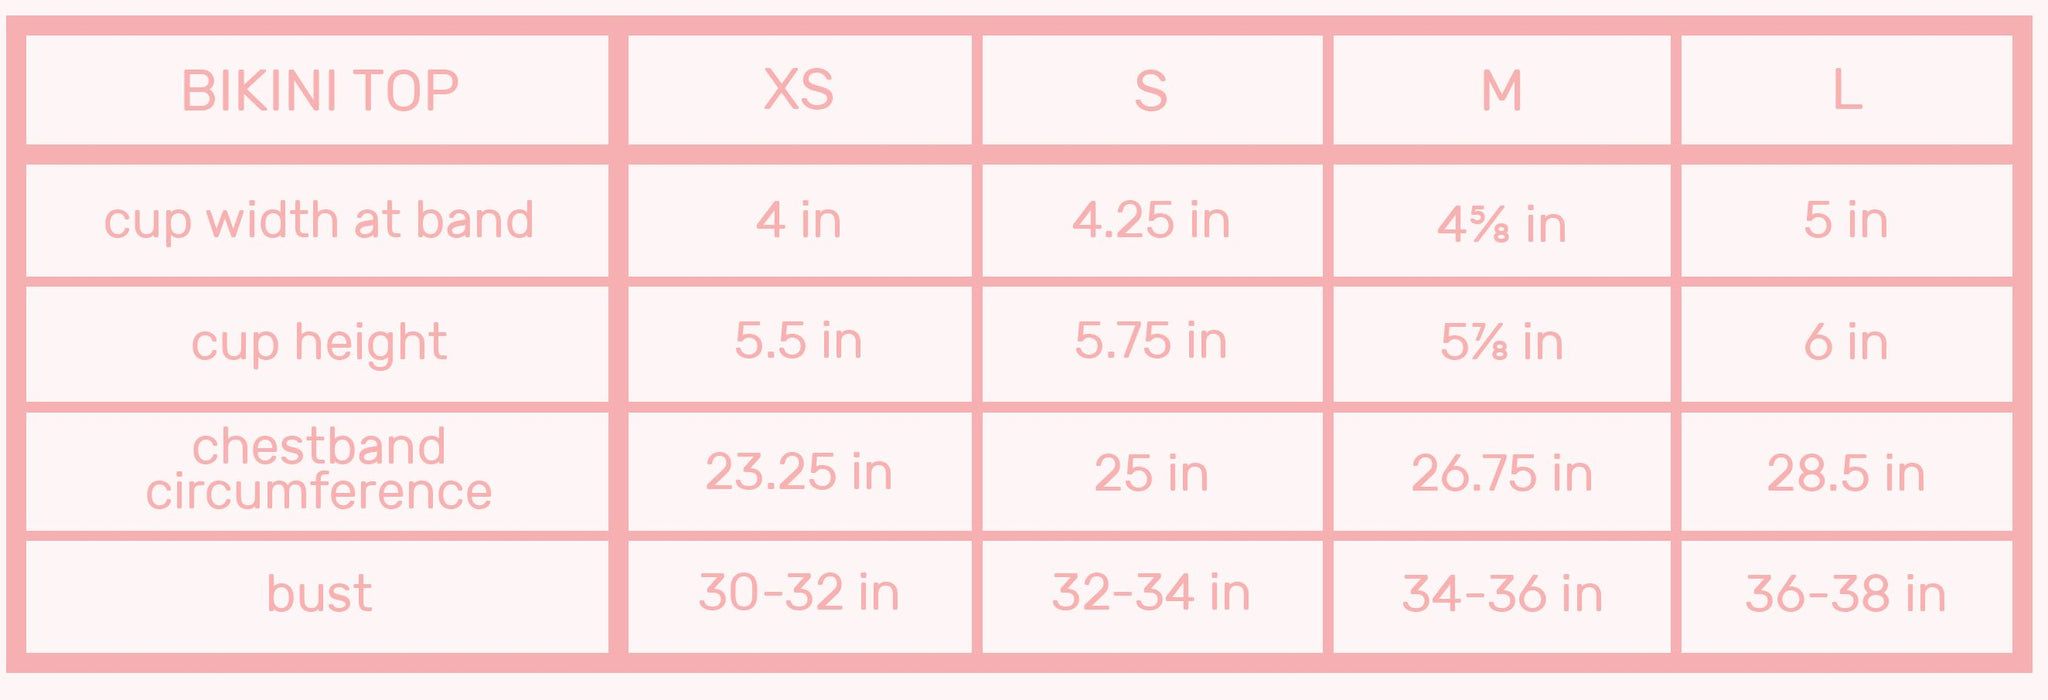 neoprene bikini top sizes chart